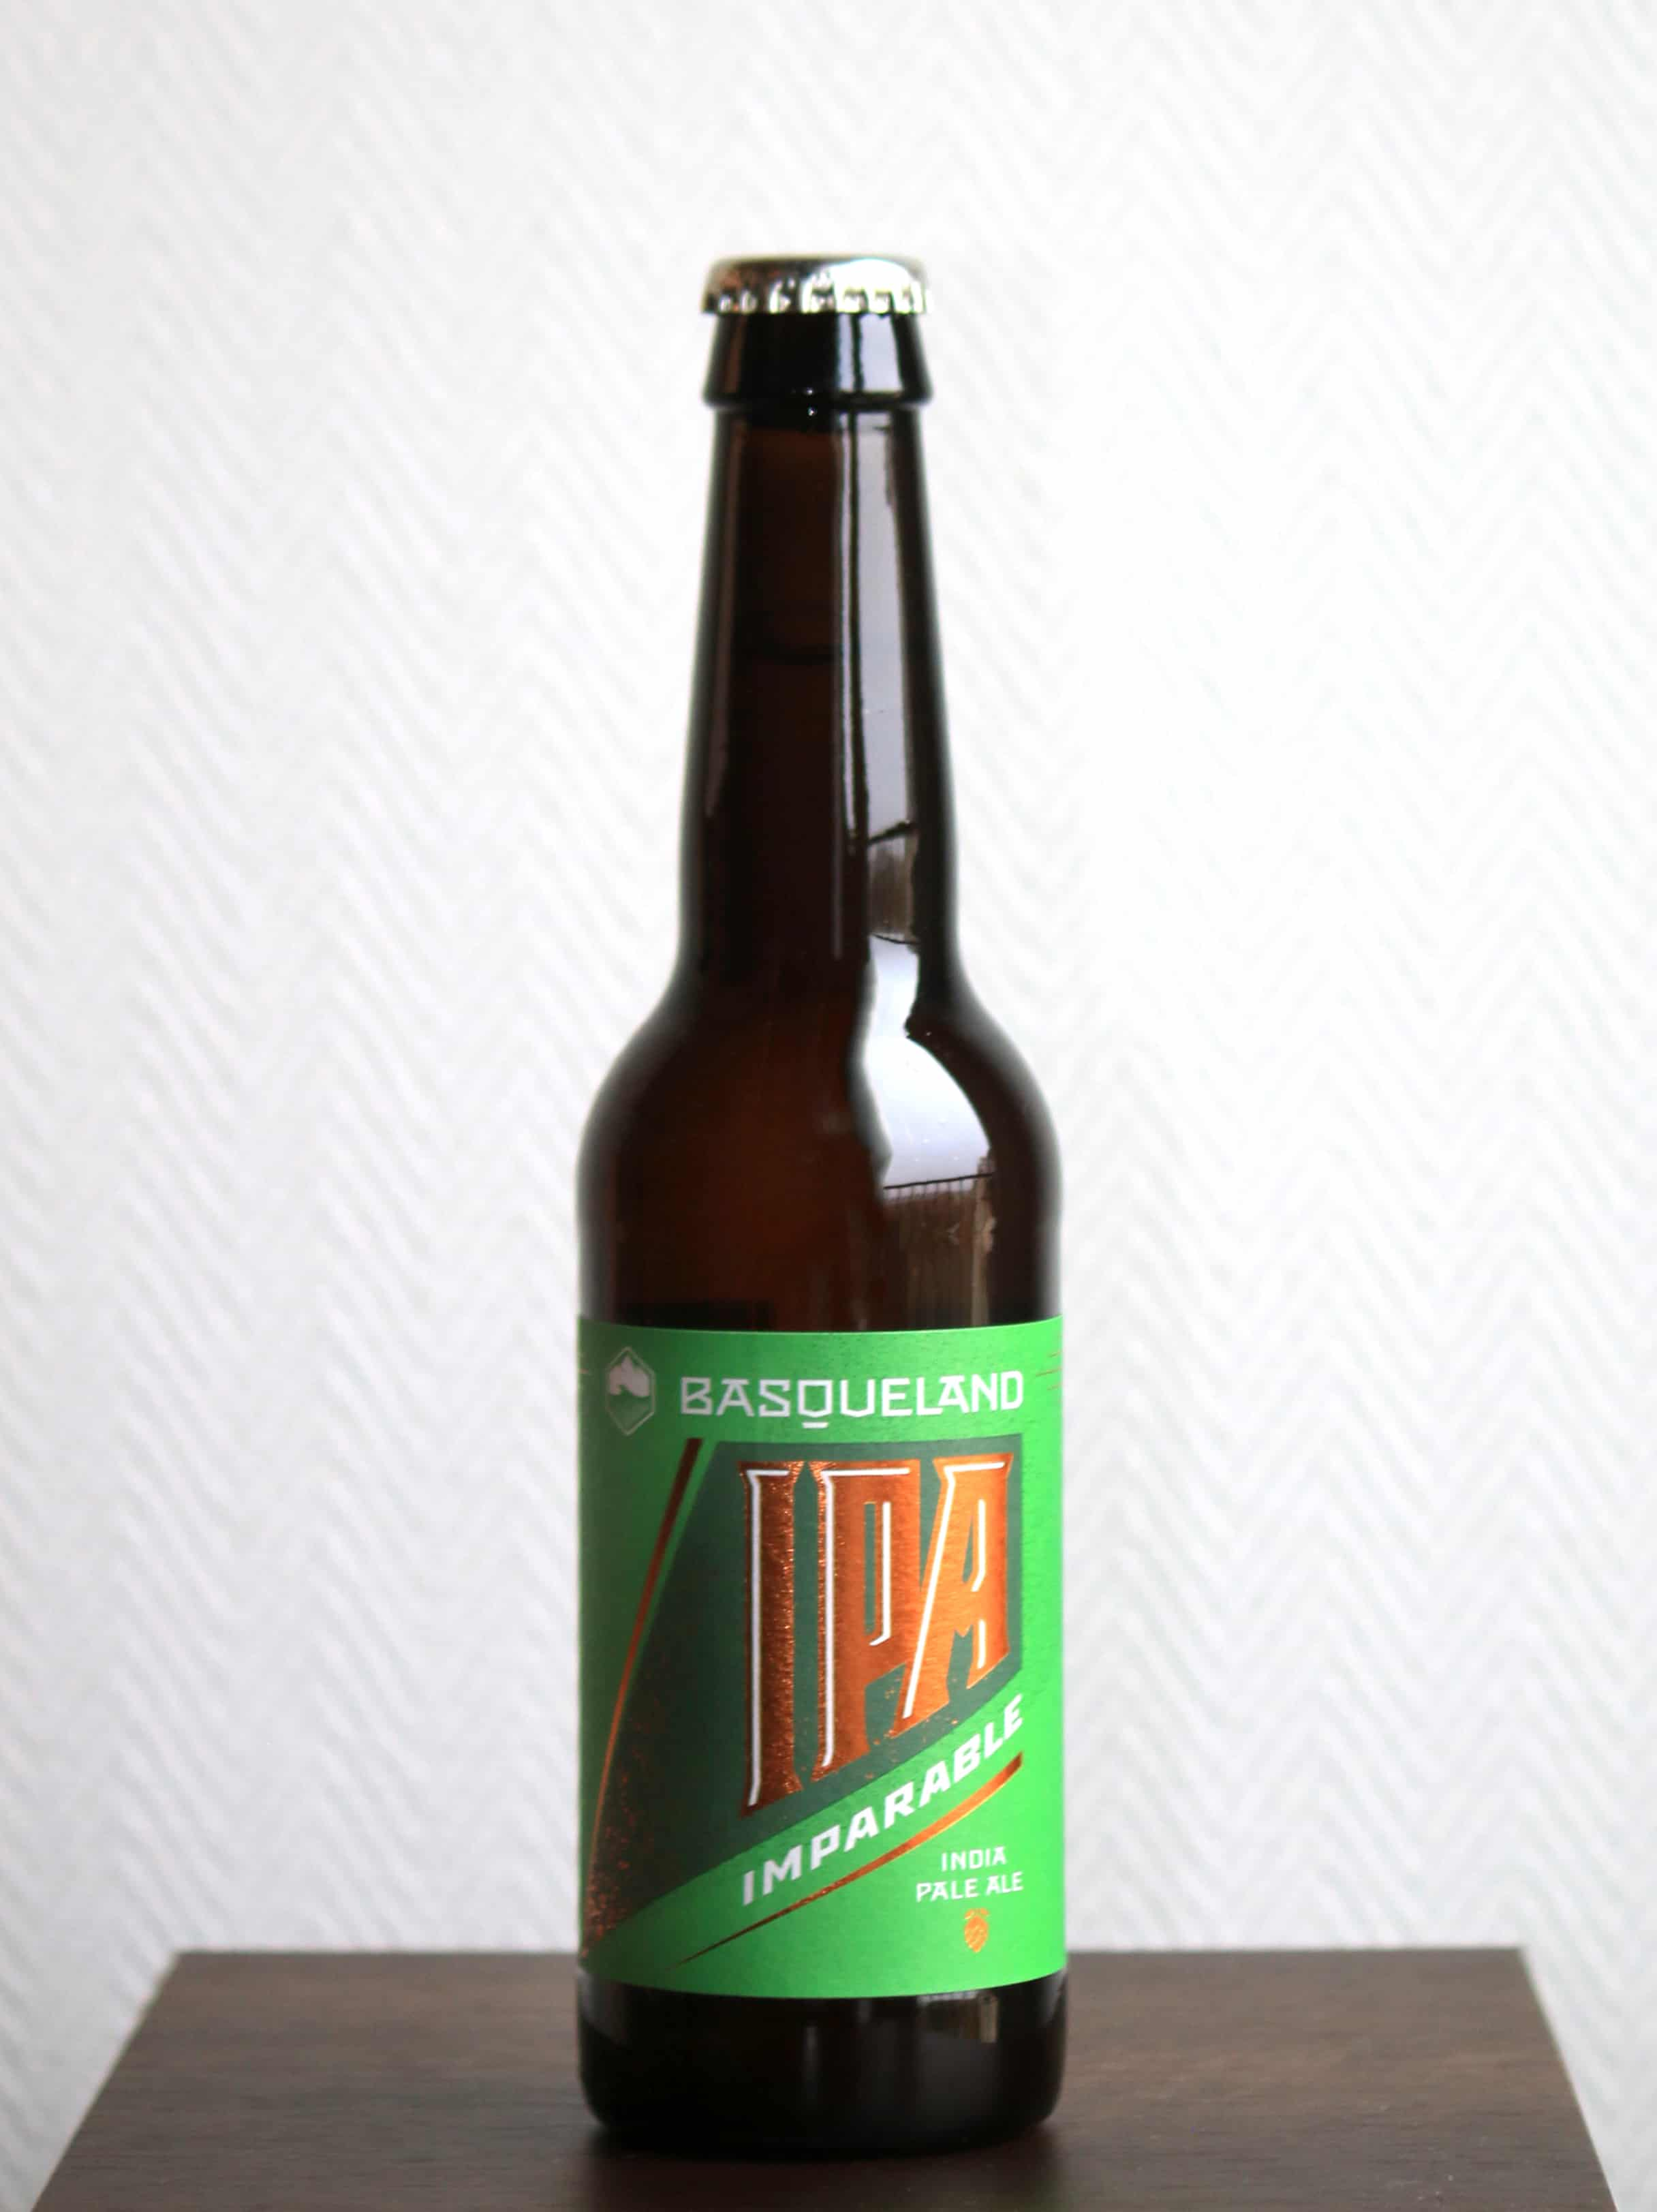 Basqueland Brewing Project, Imparable IPA 33 cL (Espagne - India Pale Ale) - de Viry Stanislas